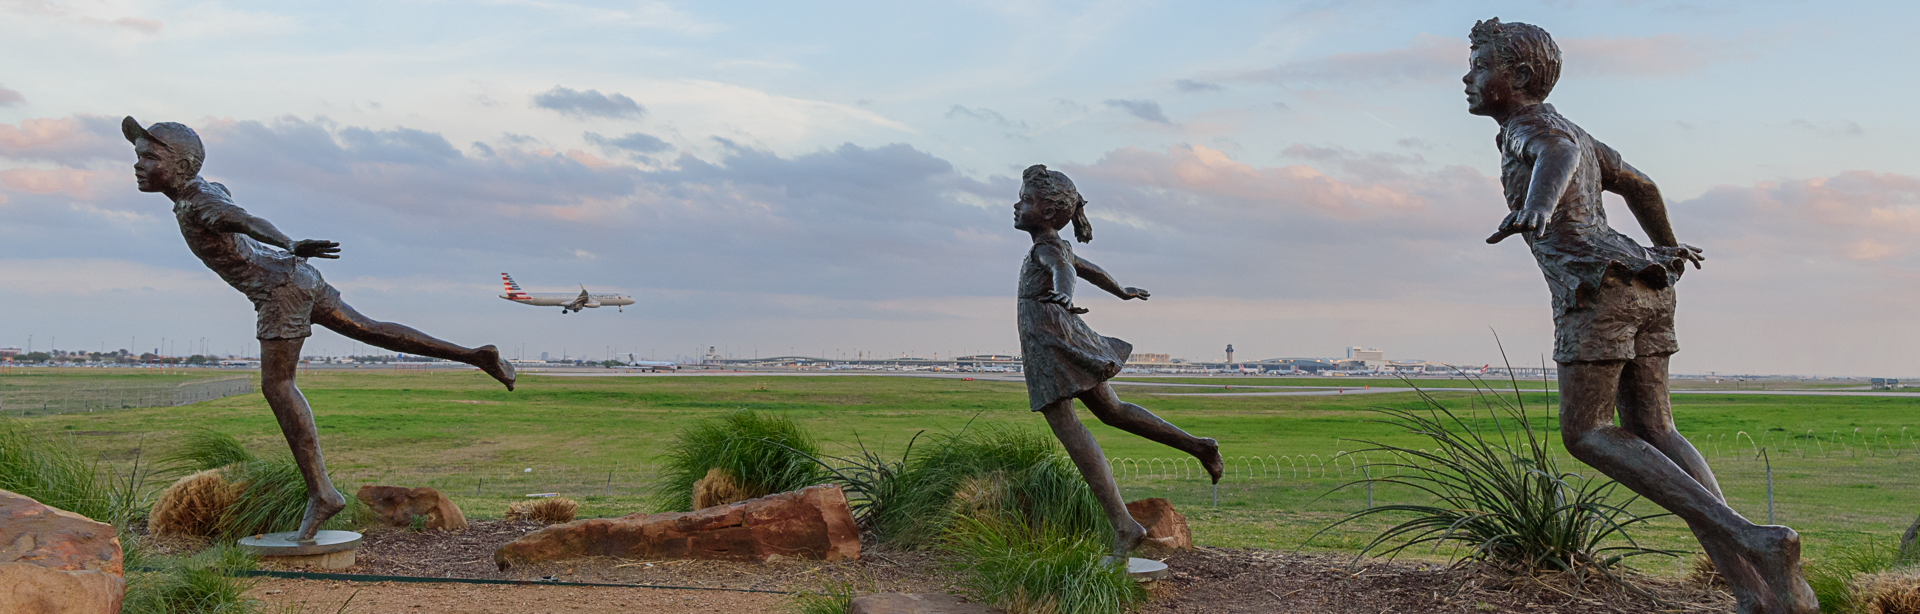 Soaring Founders Park, DFW Airport, Grapevine Texas, Grapevine financial planning, Grapevine wealth management, Grapevine investment management, better investment experience